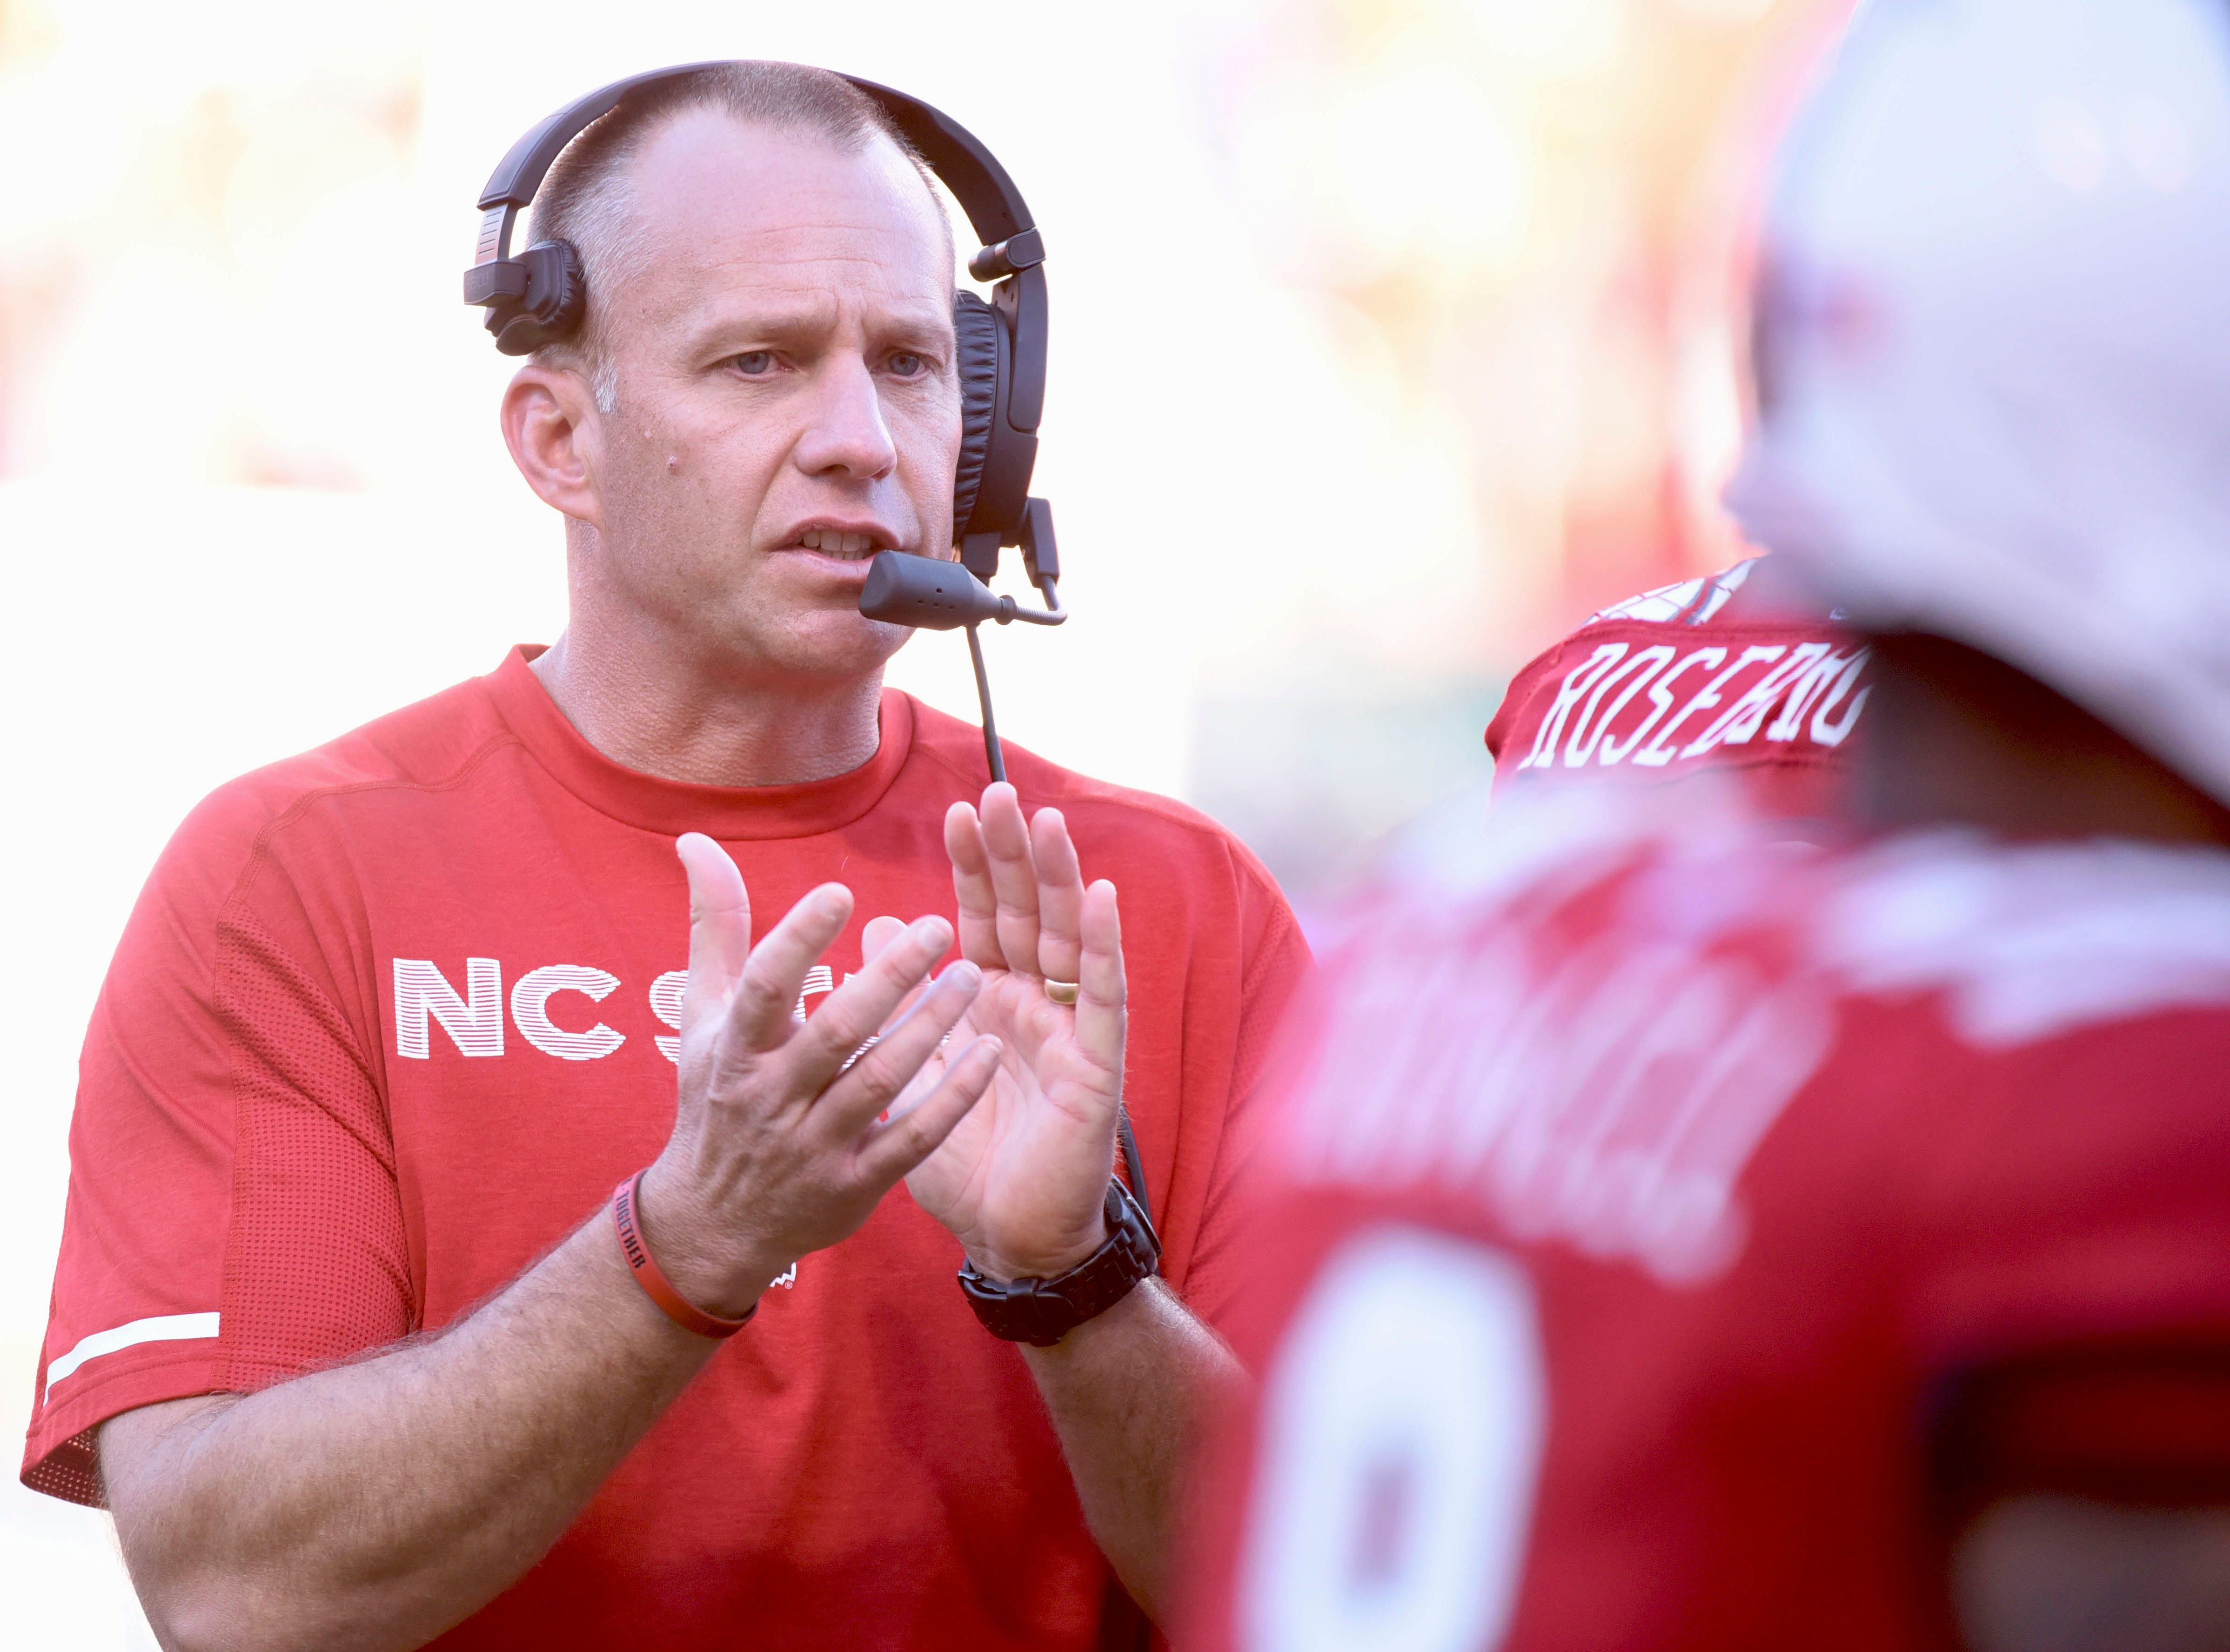 Nov 3, 2018; Raleigh, NC, USA; North Carolina State Wolfpack head coach Dave Doeren encourages his team during the first half against the Florida State Seminoles at Carter-Finley Stadium. Mandatory Credit: Rob Kinnan-USA TODAY Sports